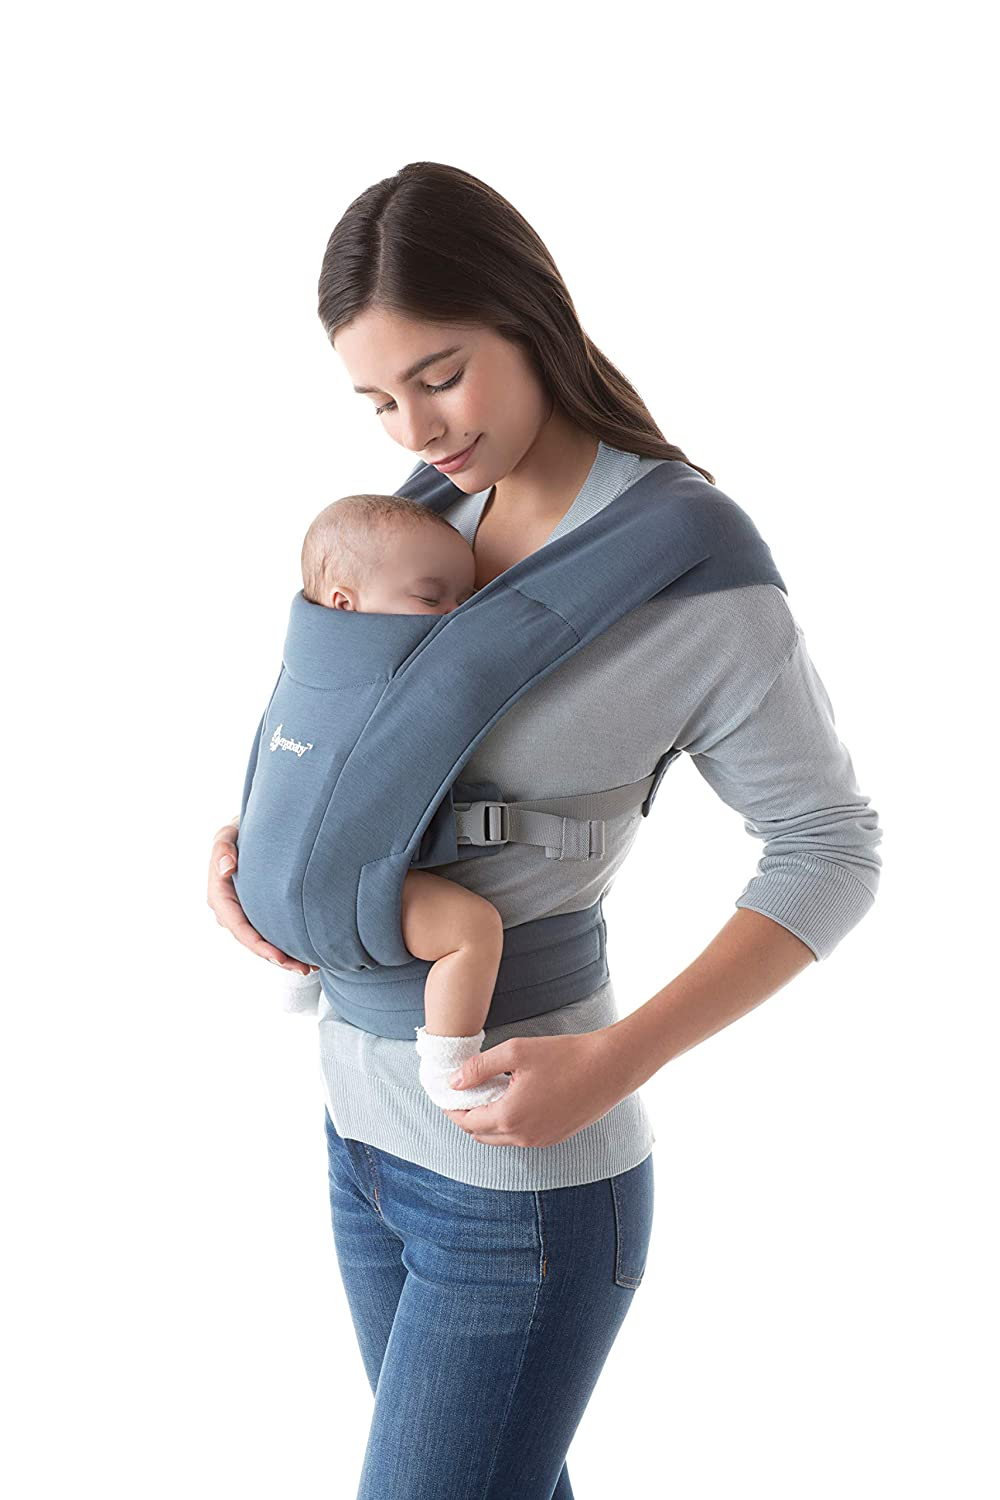 Ergobaby Embrace Baby Wrap Carrier, Infant Carrier for Newborns 7-25 Pounds, Oxford Blue